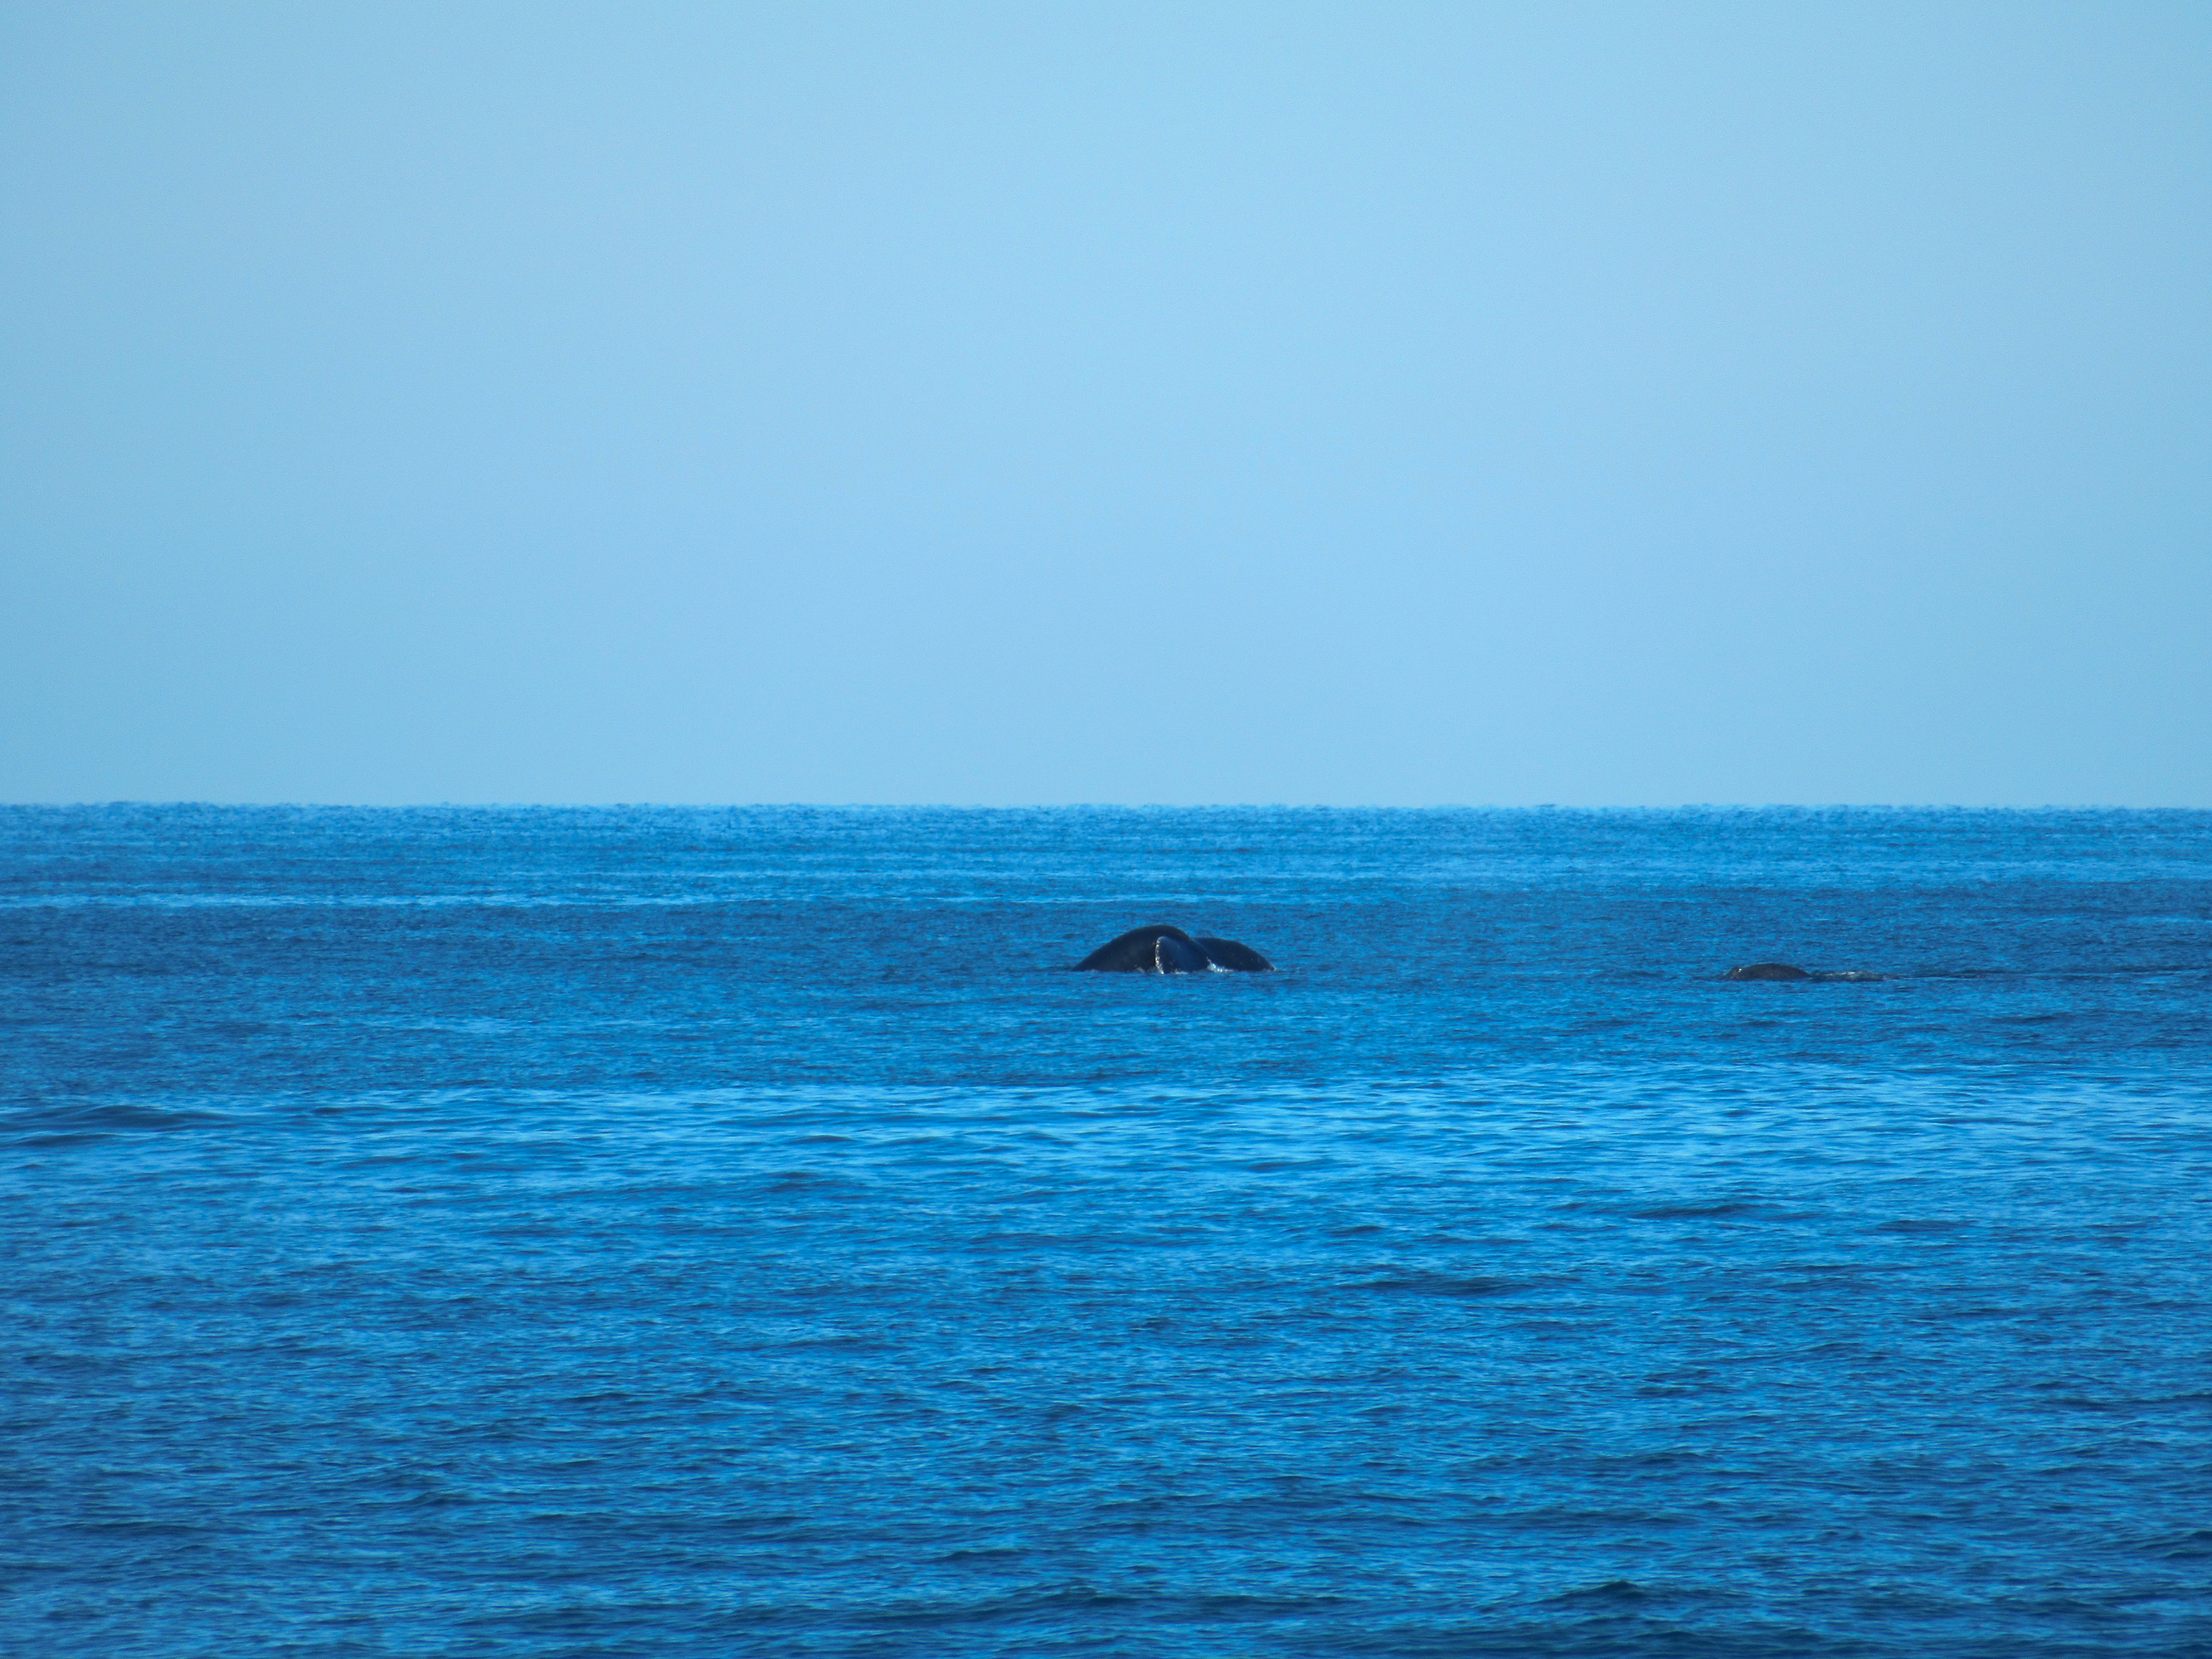 A whale surfaces in banderas bay.